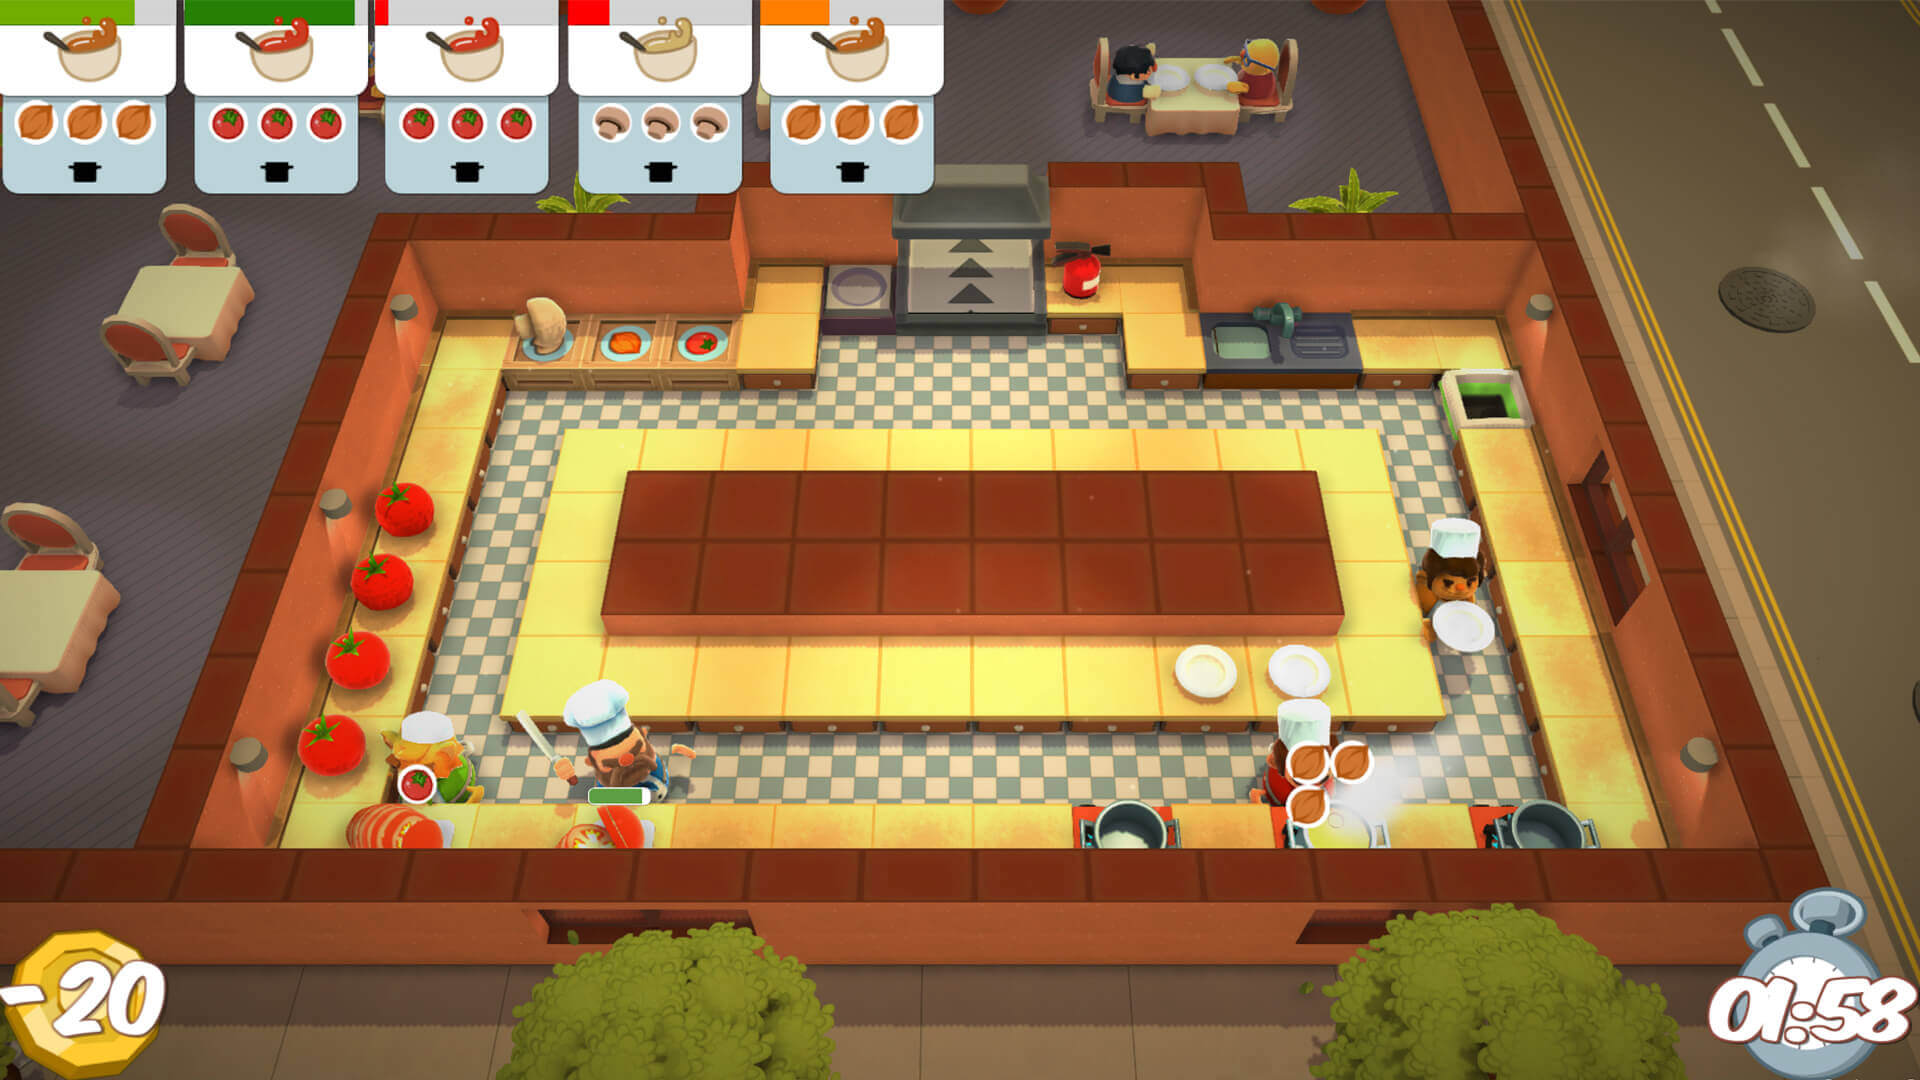 Overcooked - Crazy Co-op Cooking Action!